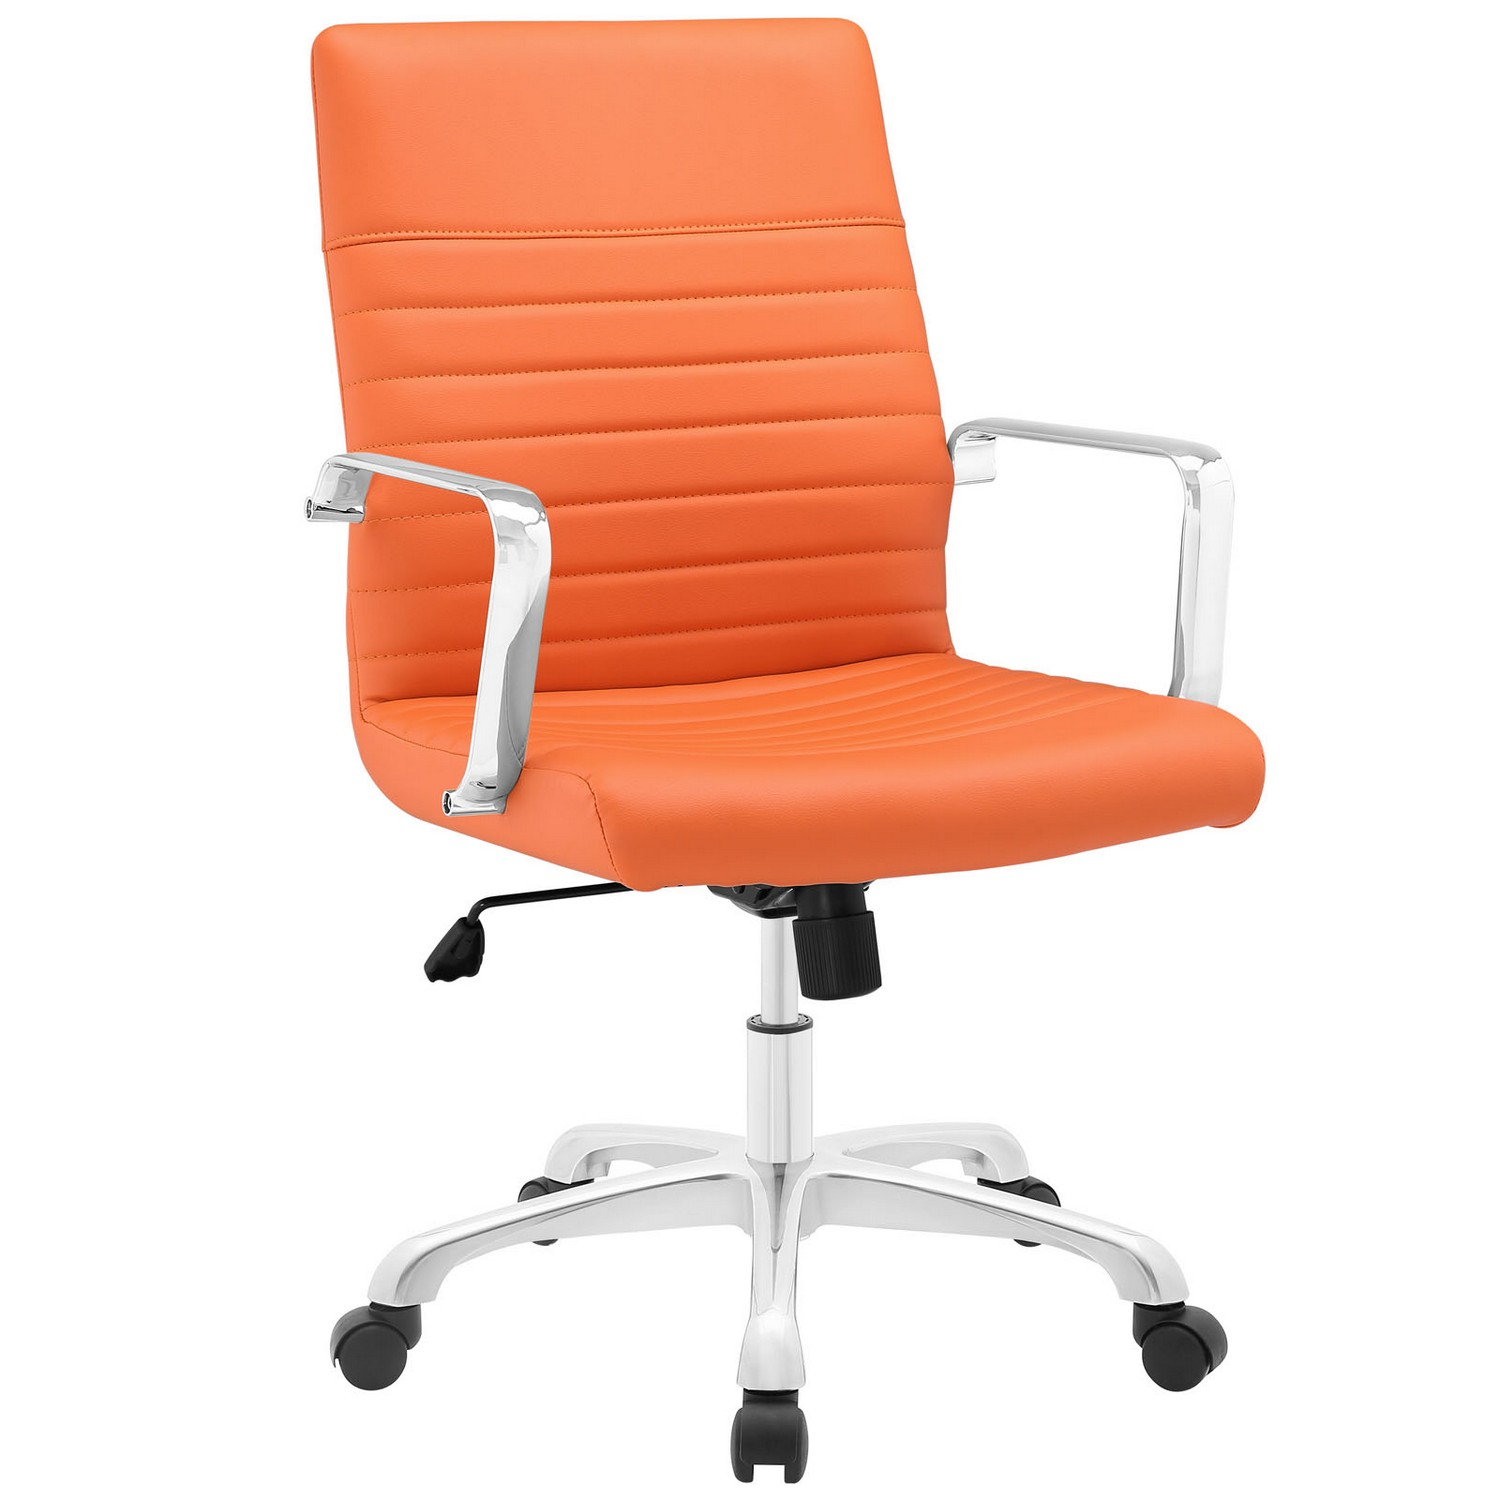 Modway Finesse Mid Back Office Chair - Orange